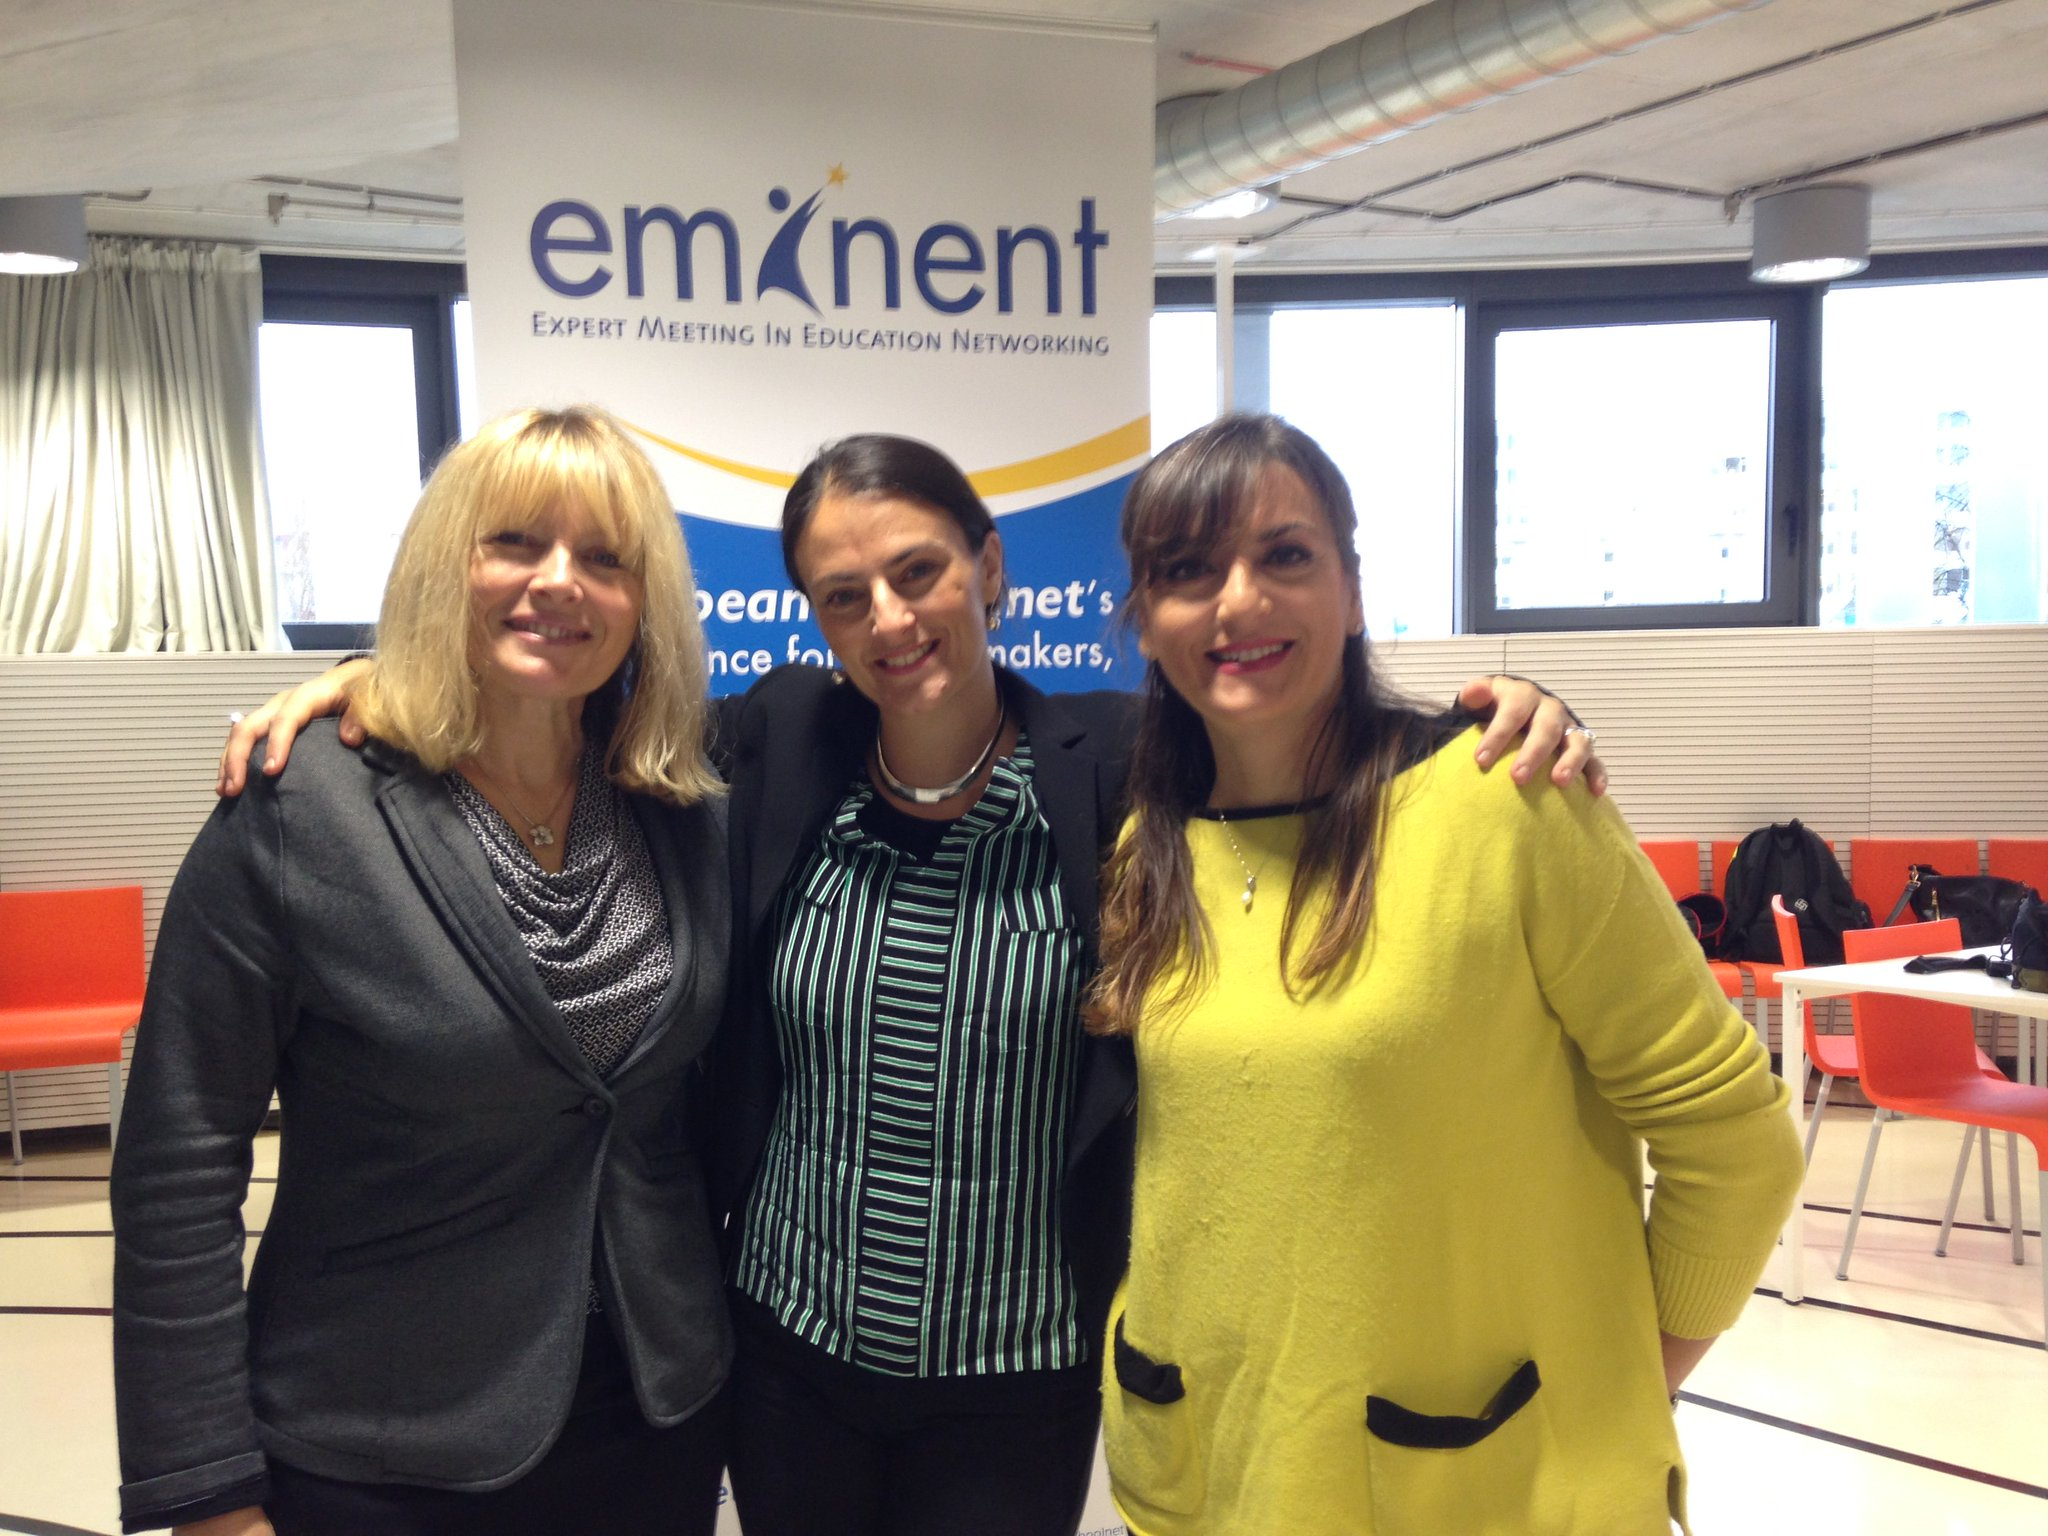 F2F collaboration with @CBKearney & @PatriziaRoma1 #Eminent2016 #Colab_eu https://t.co/0WfgrY2AuF